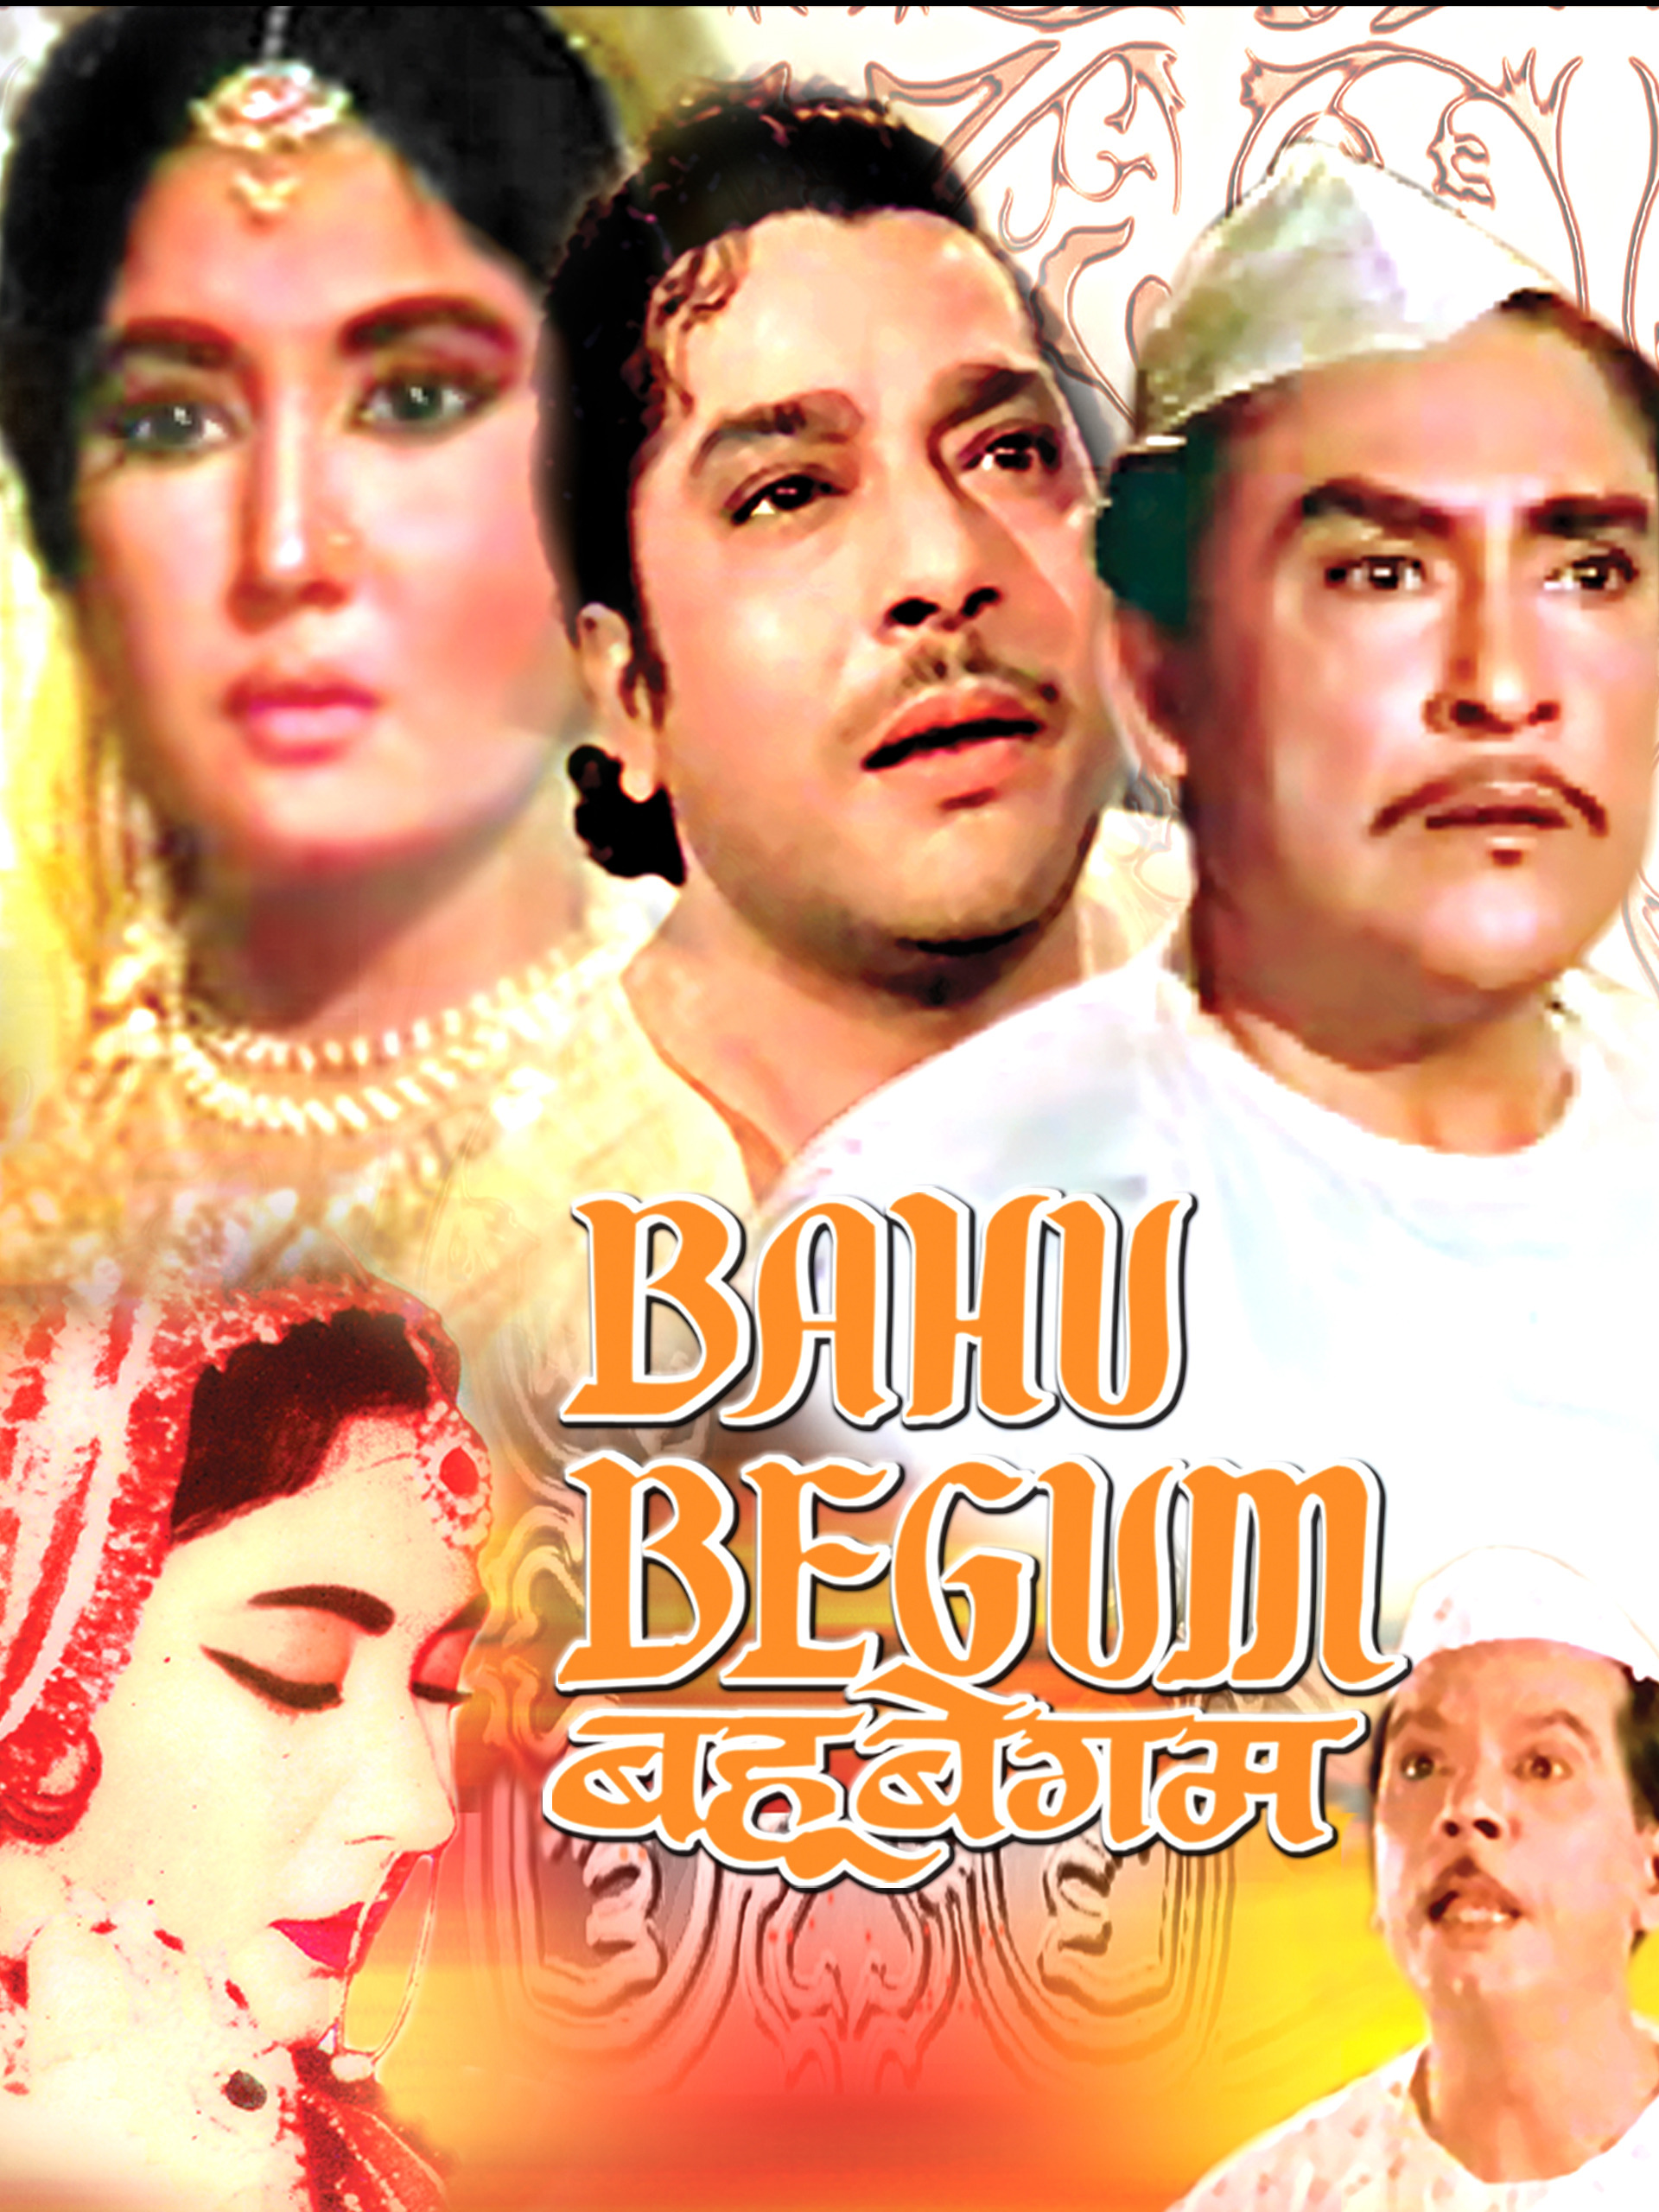 Bahu Begum Movie Review Release Date Songs Music Images Official Trailers Videos Photos News Bollywood Hungama